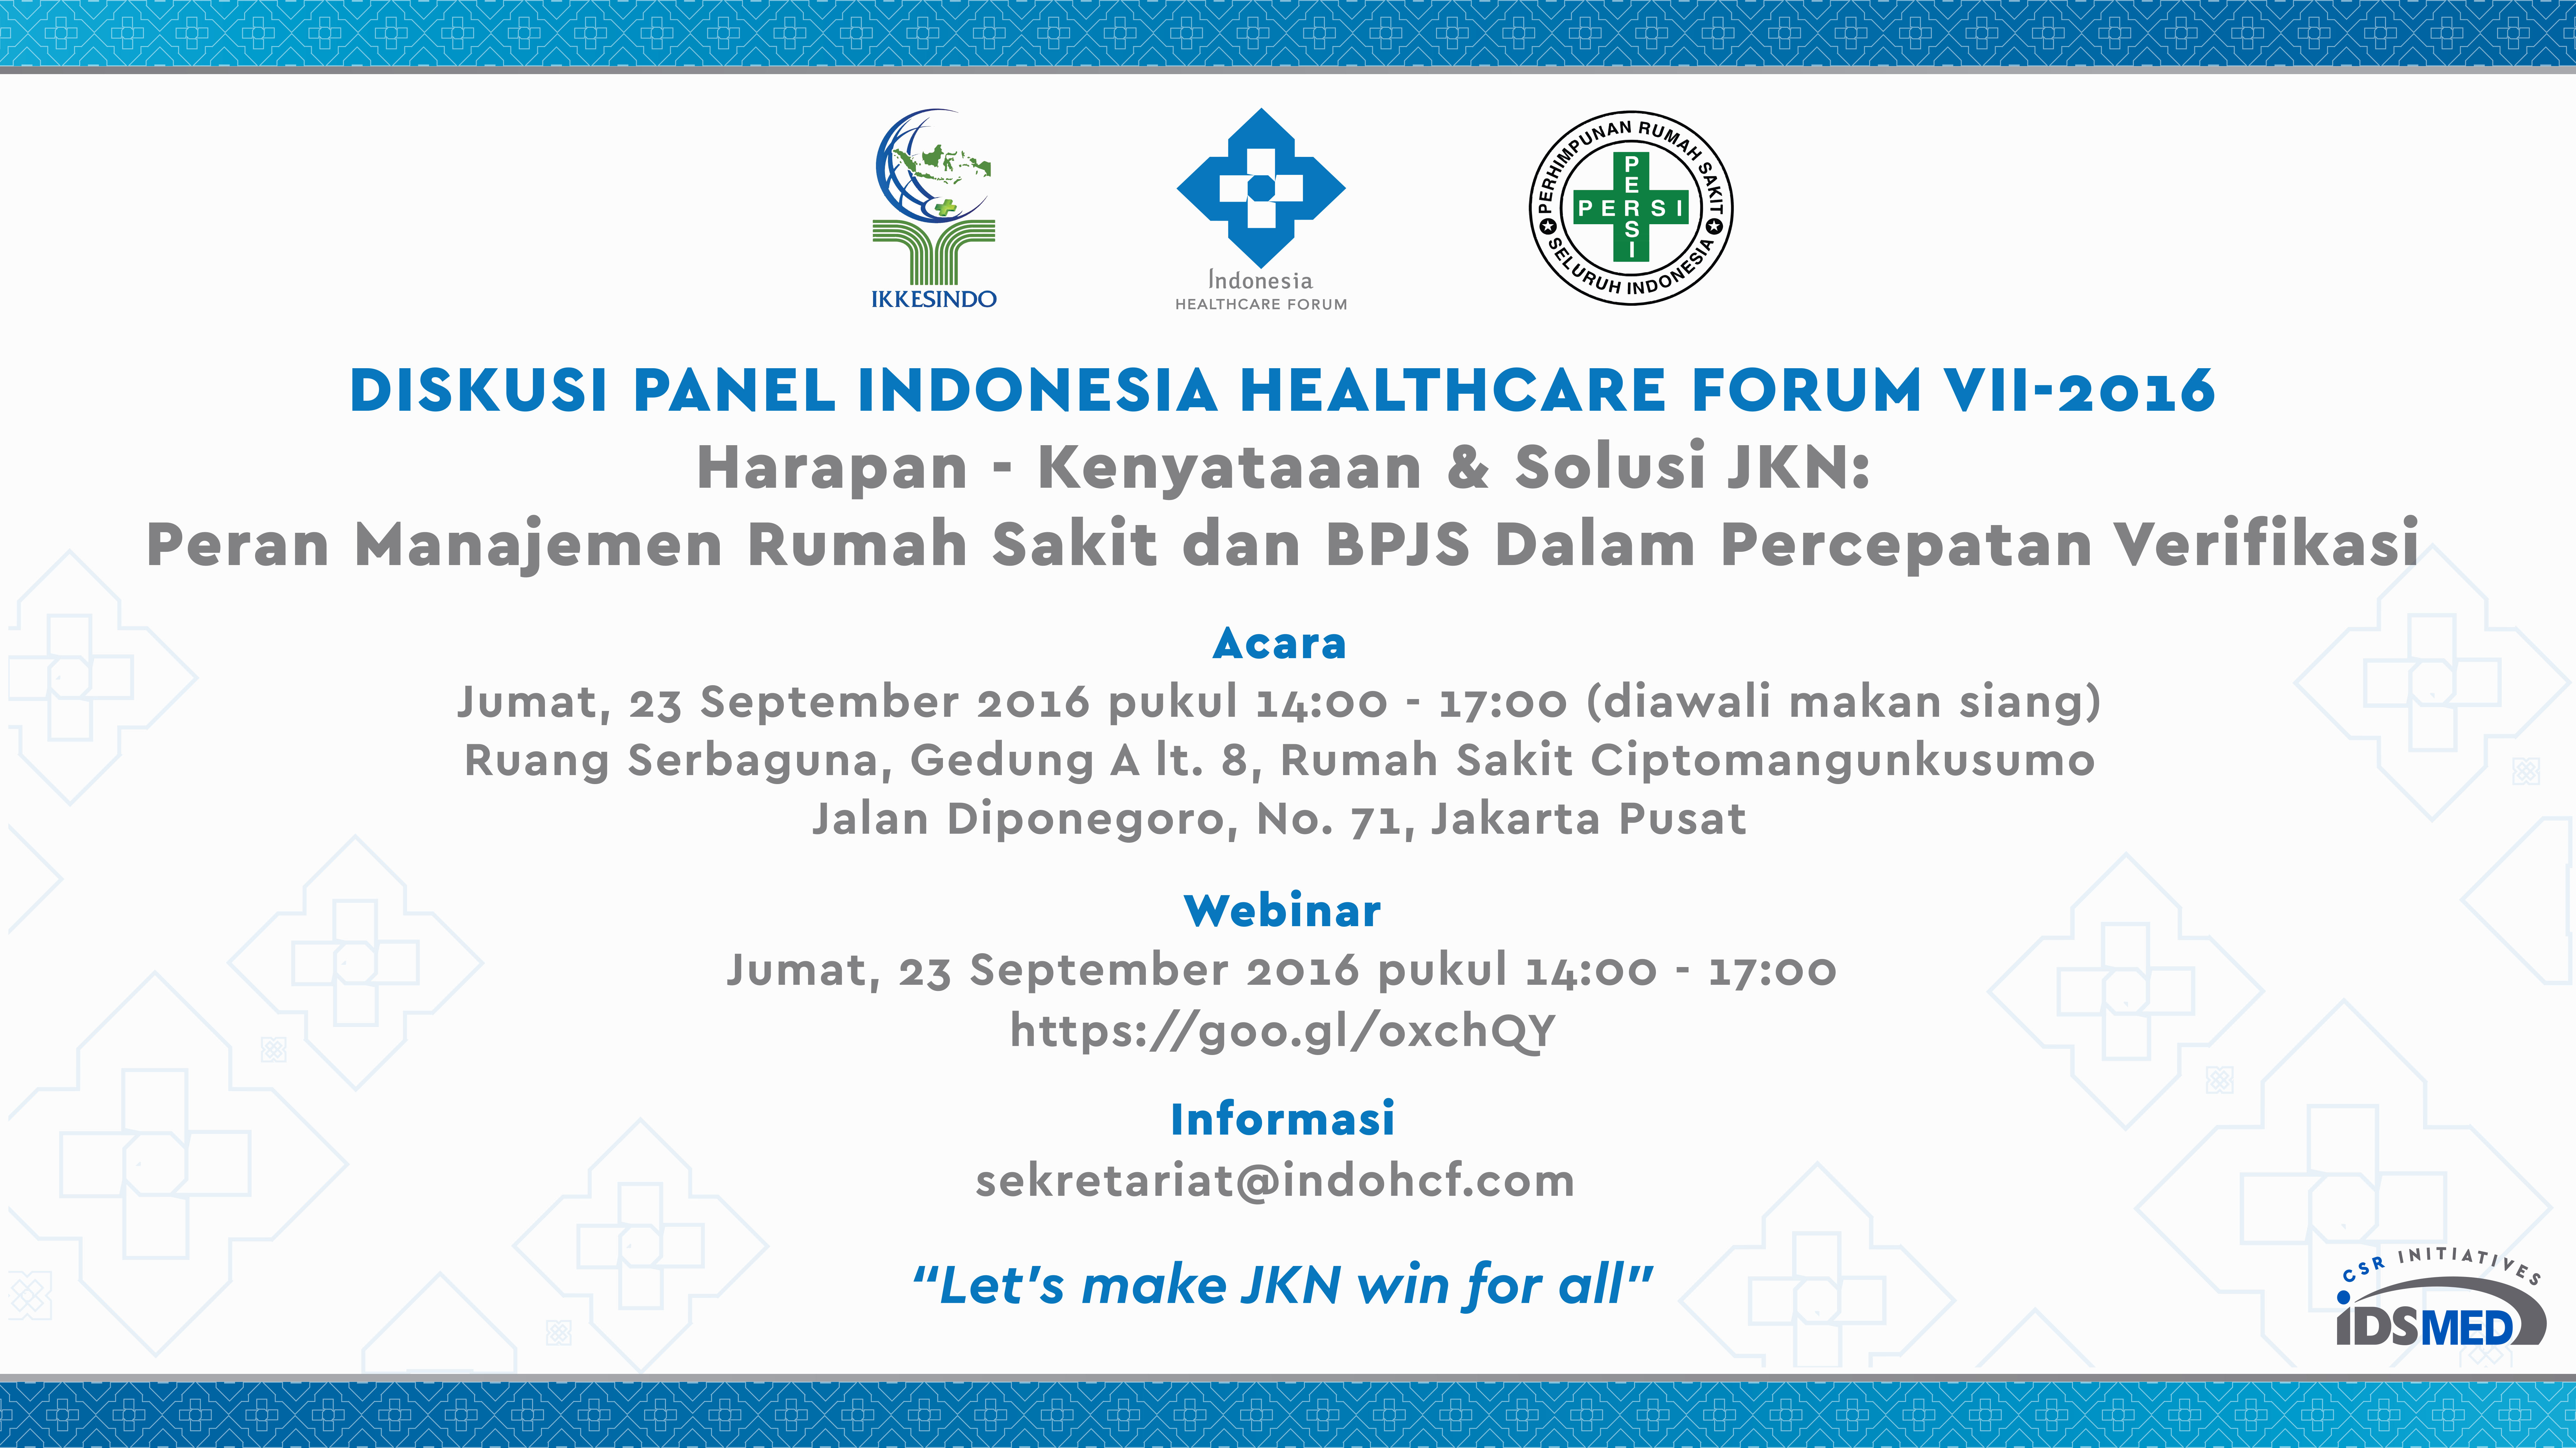 2016-09/announcement-diskusi-panel-indohcf-vi-2016-fb.jpg